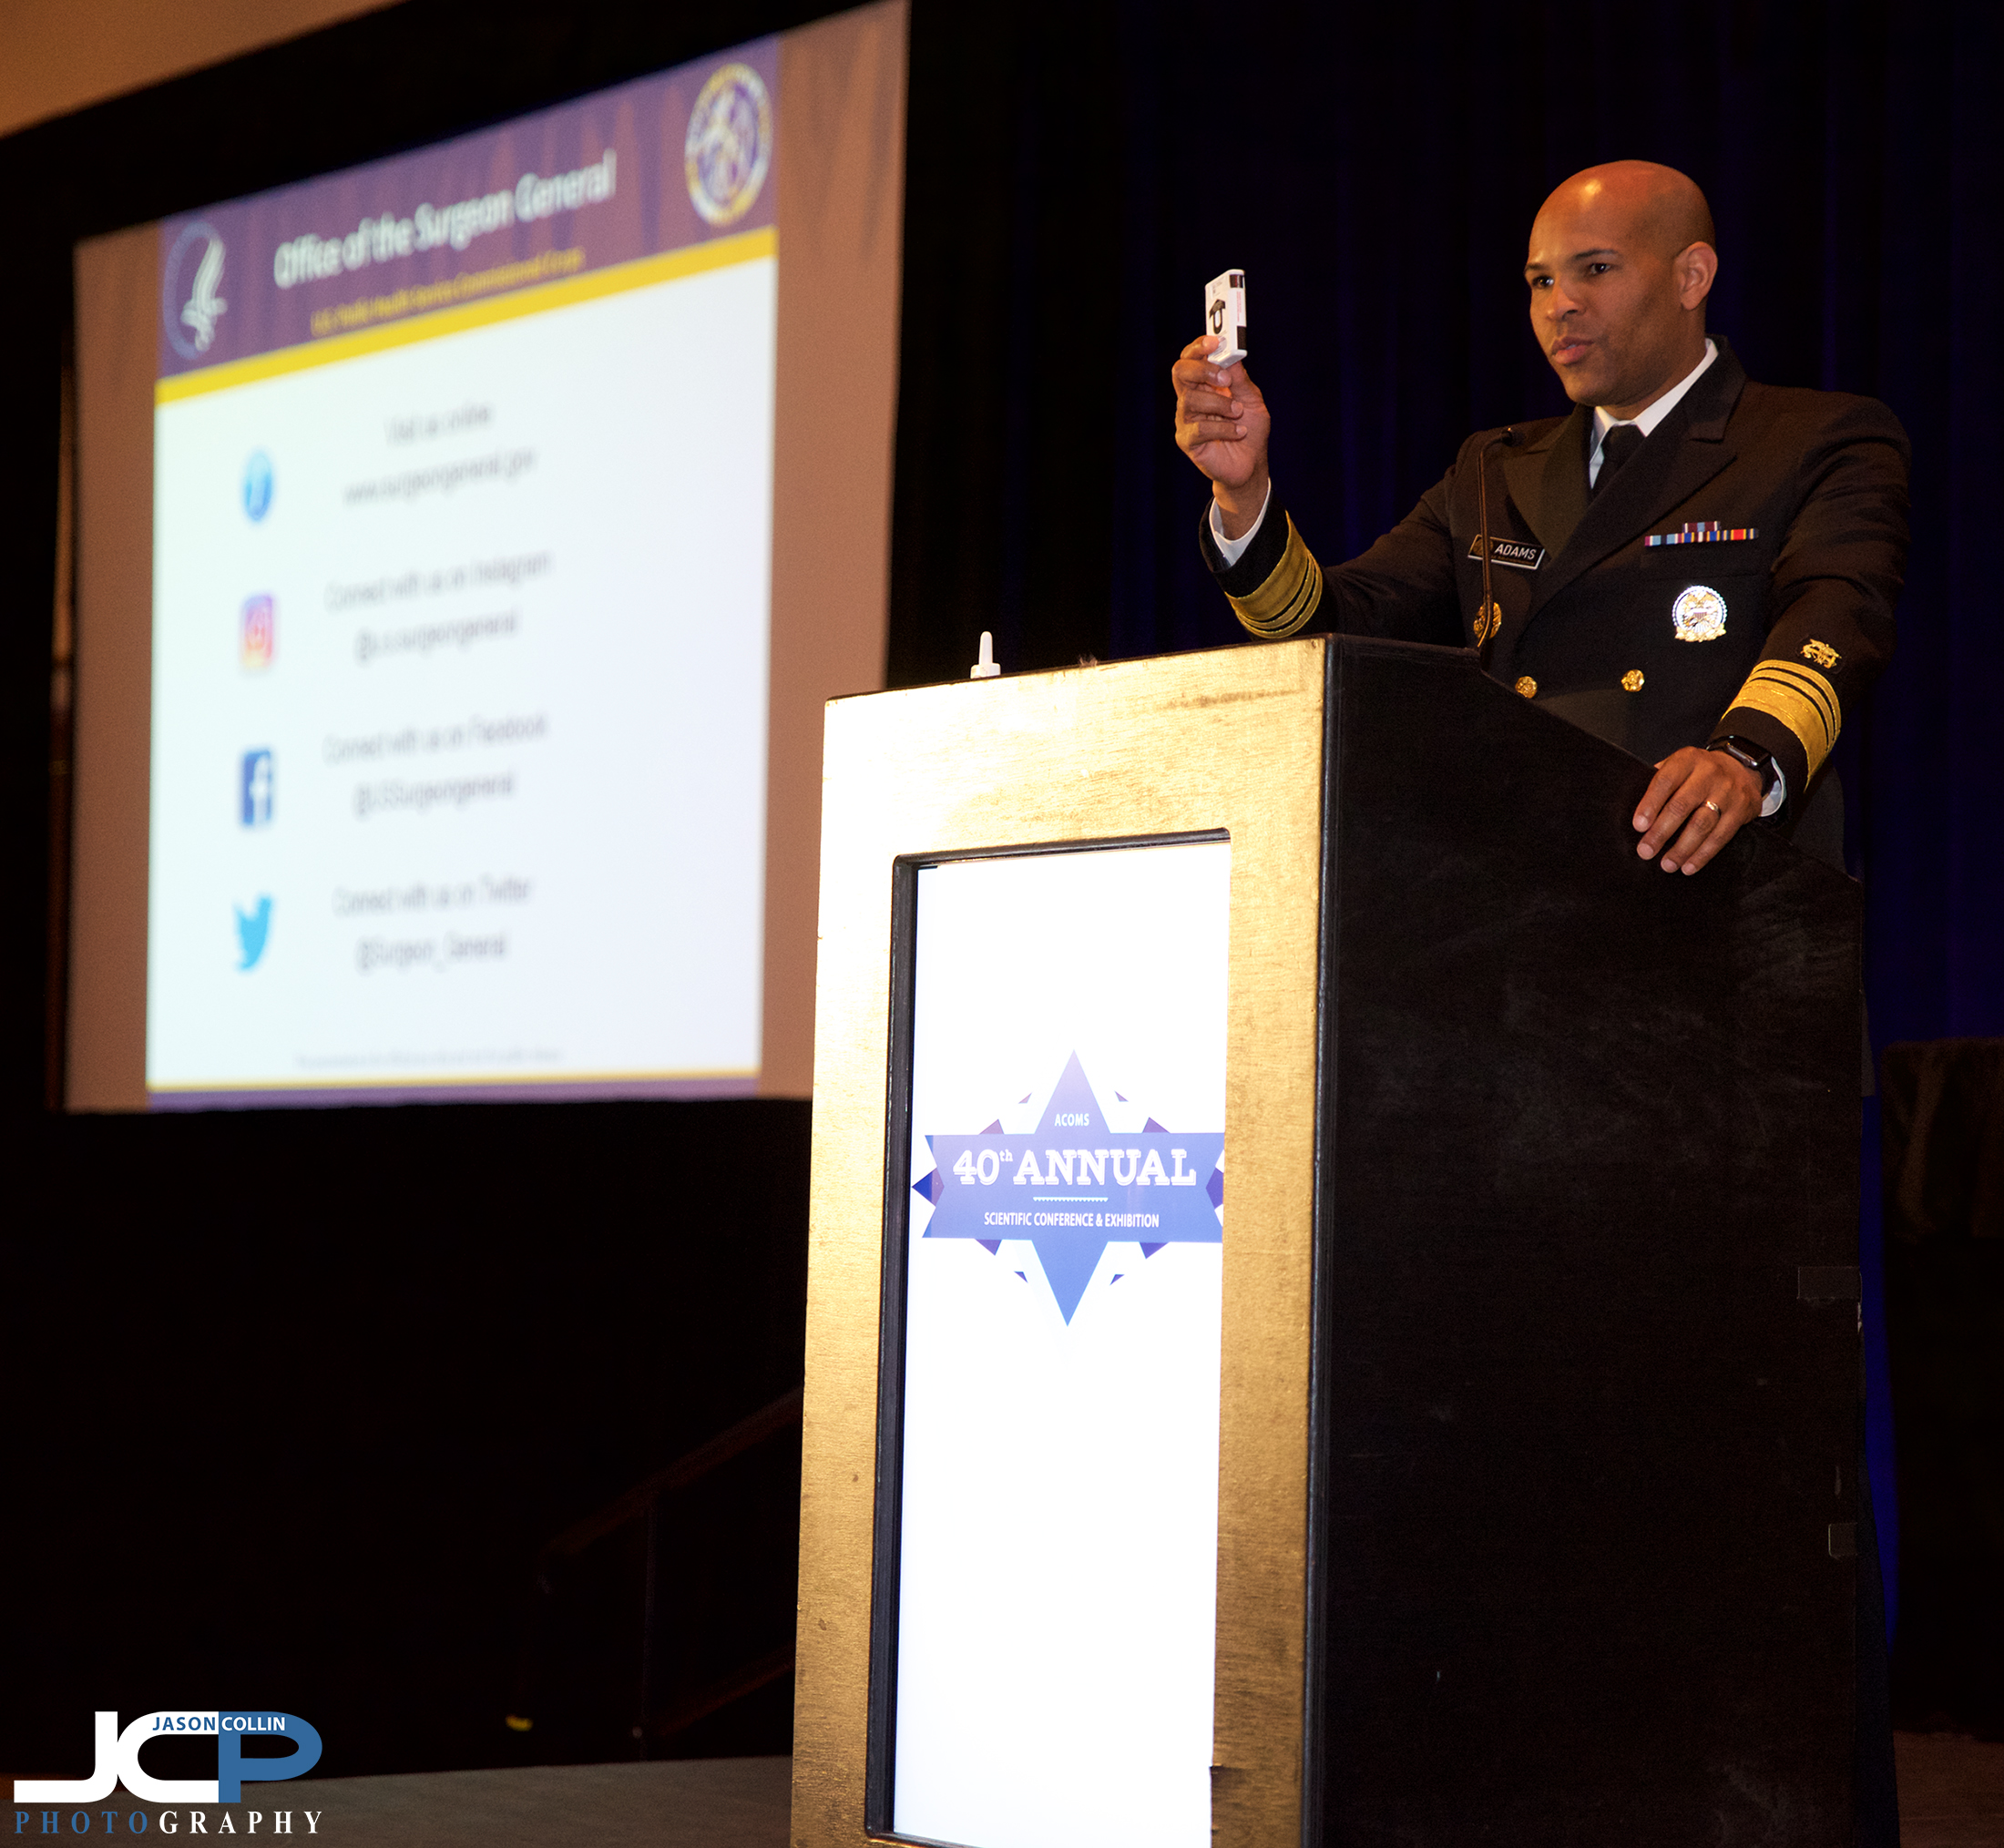 U.S. Surgeon General Dr. Jerome Adams speaks in Santa Fe, New Mexico